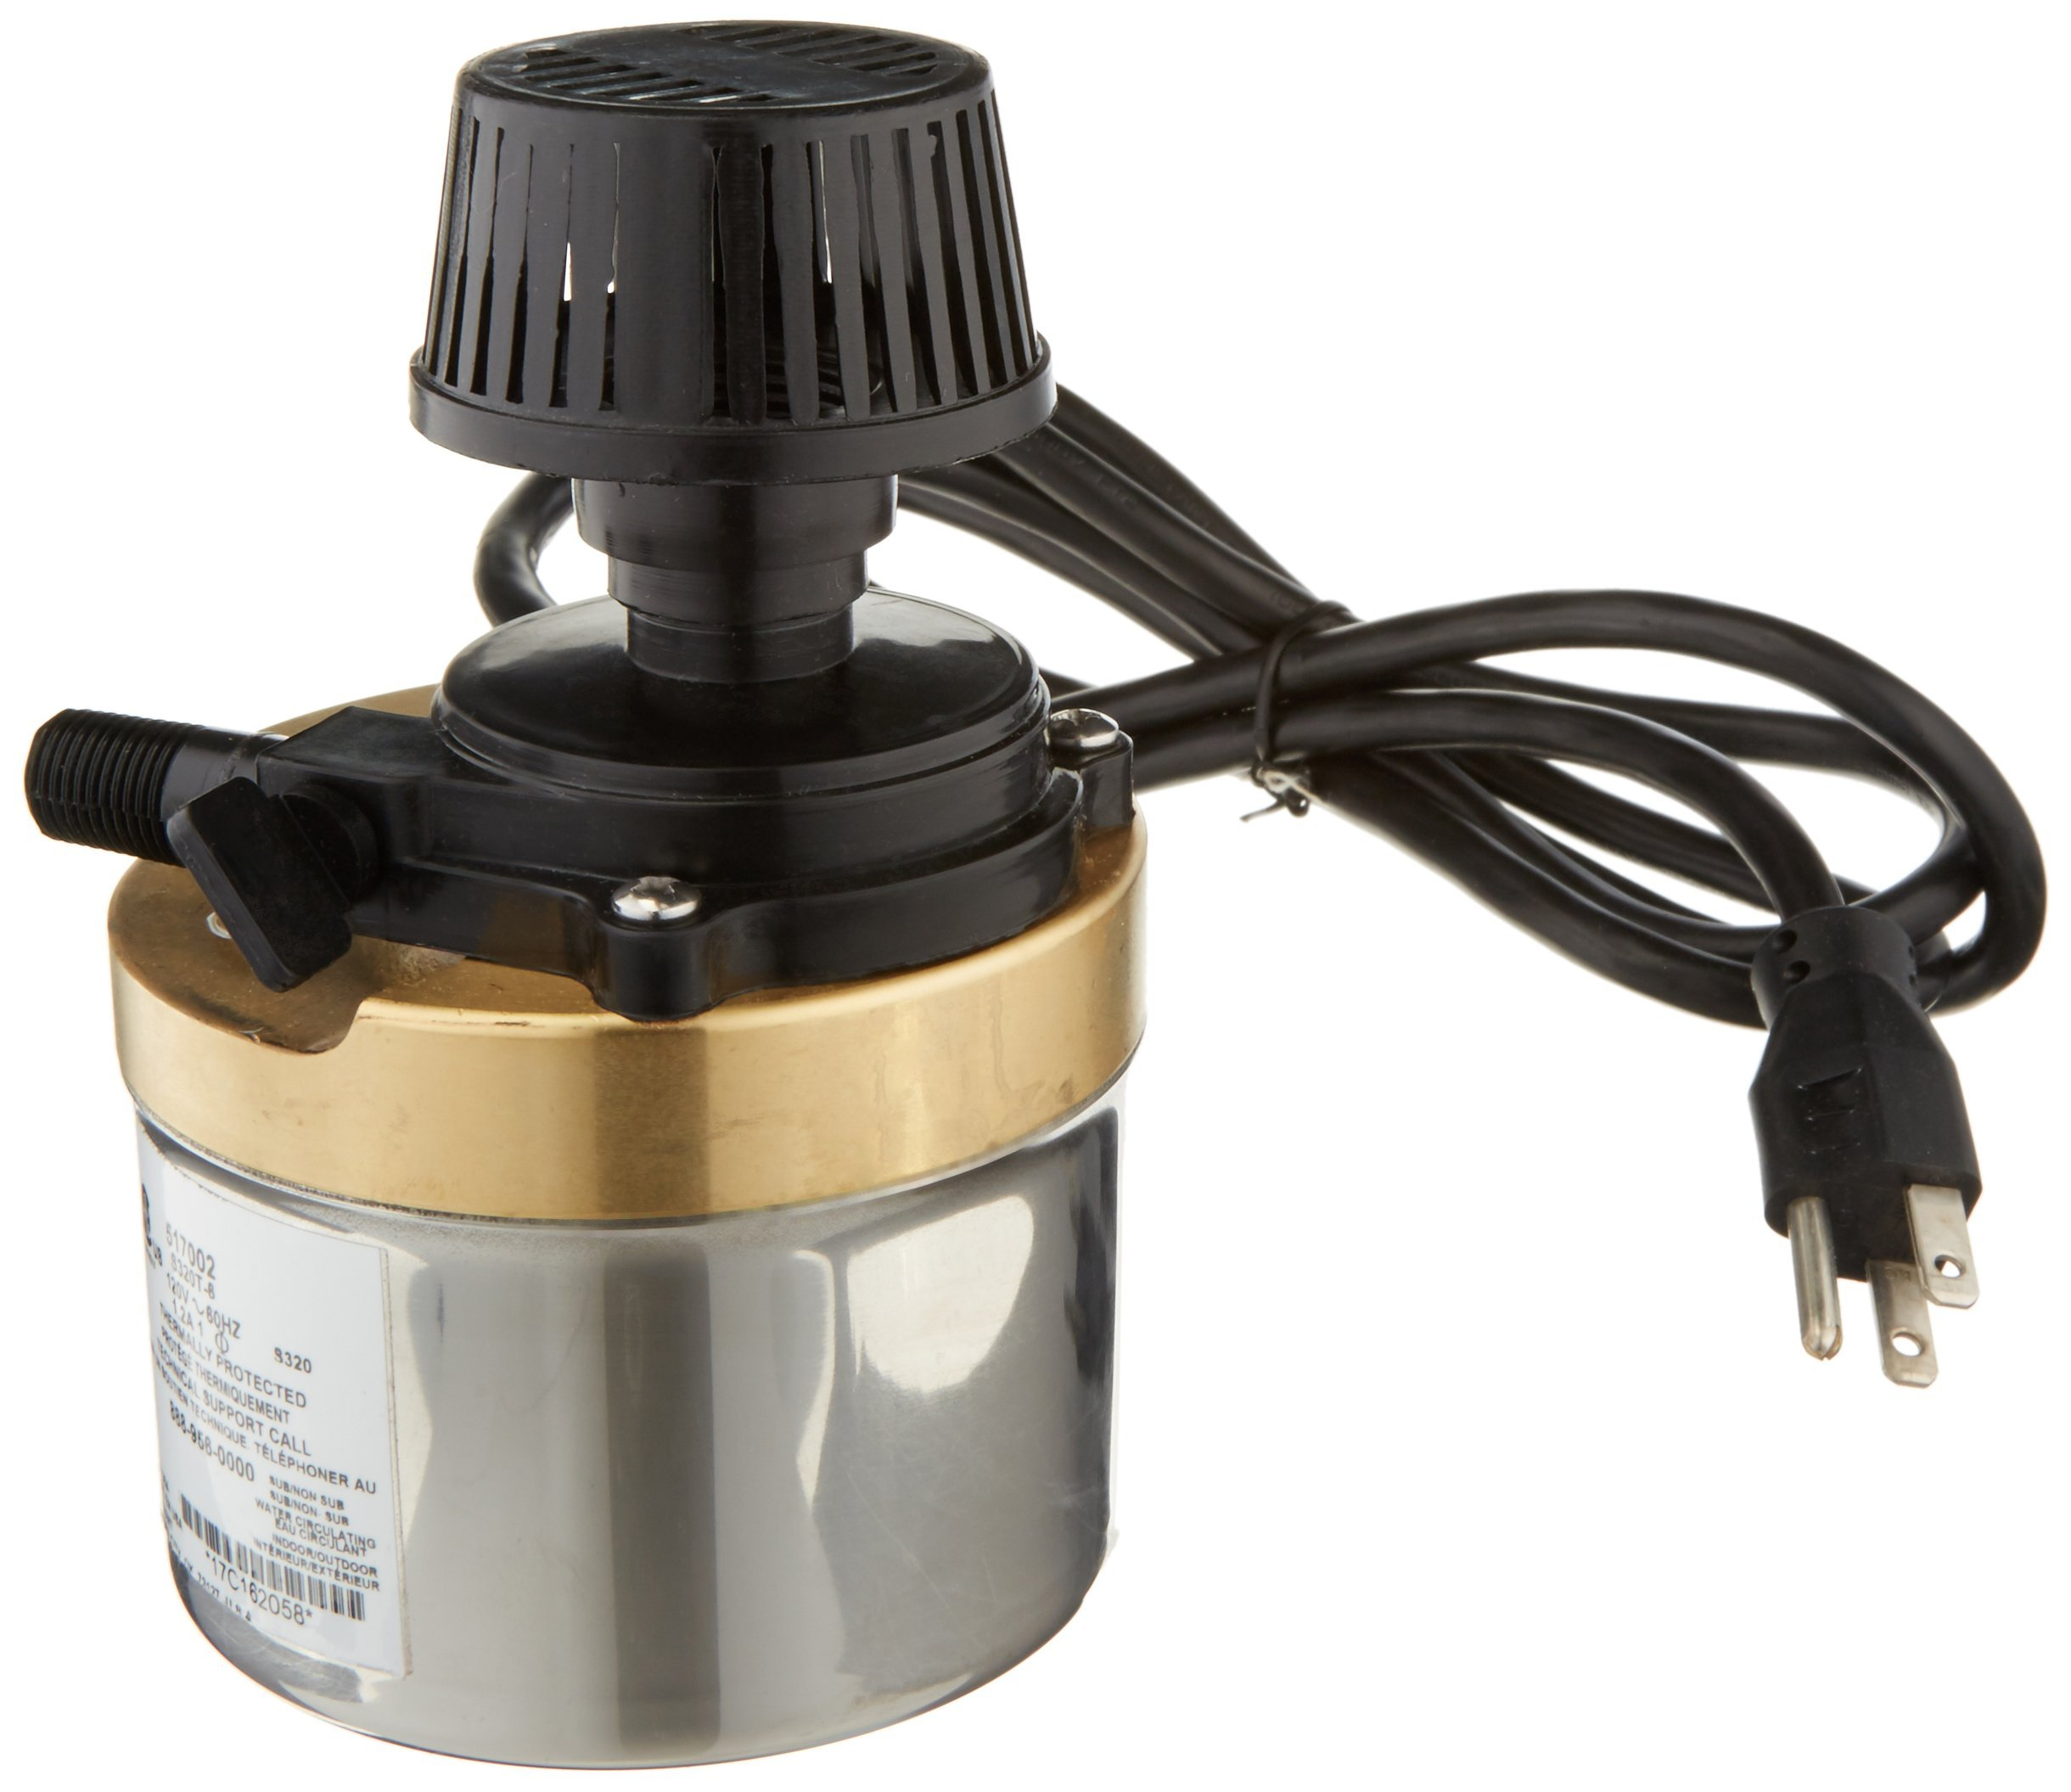 Little Giant 517002 Stainless Steel 320GPH Pump with 6-Feet Cord, Bronze by Little Giant